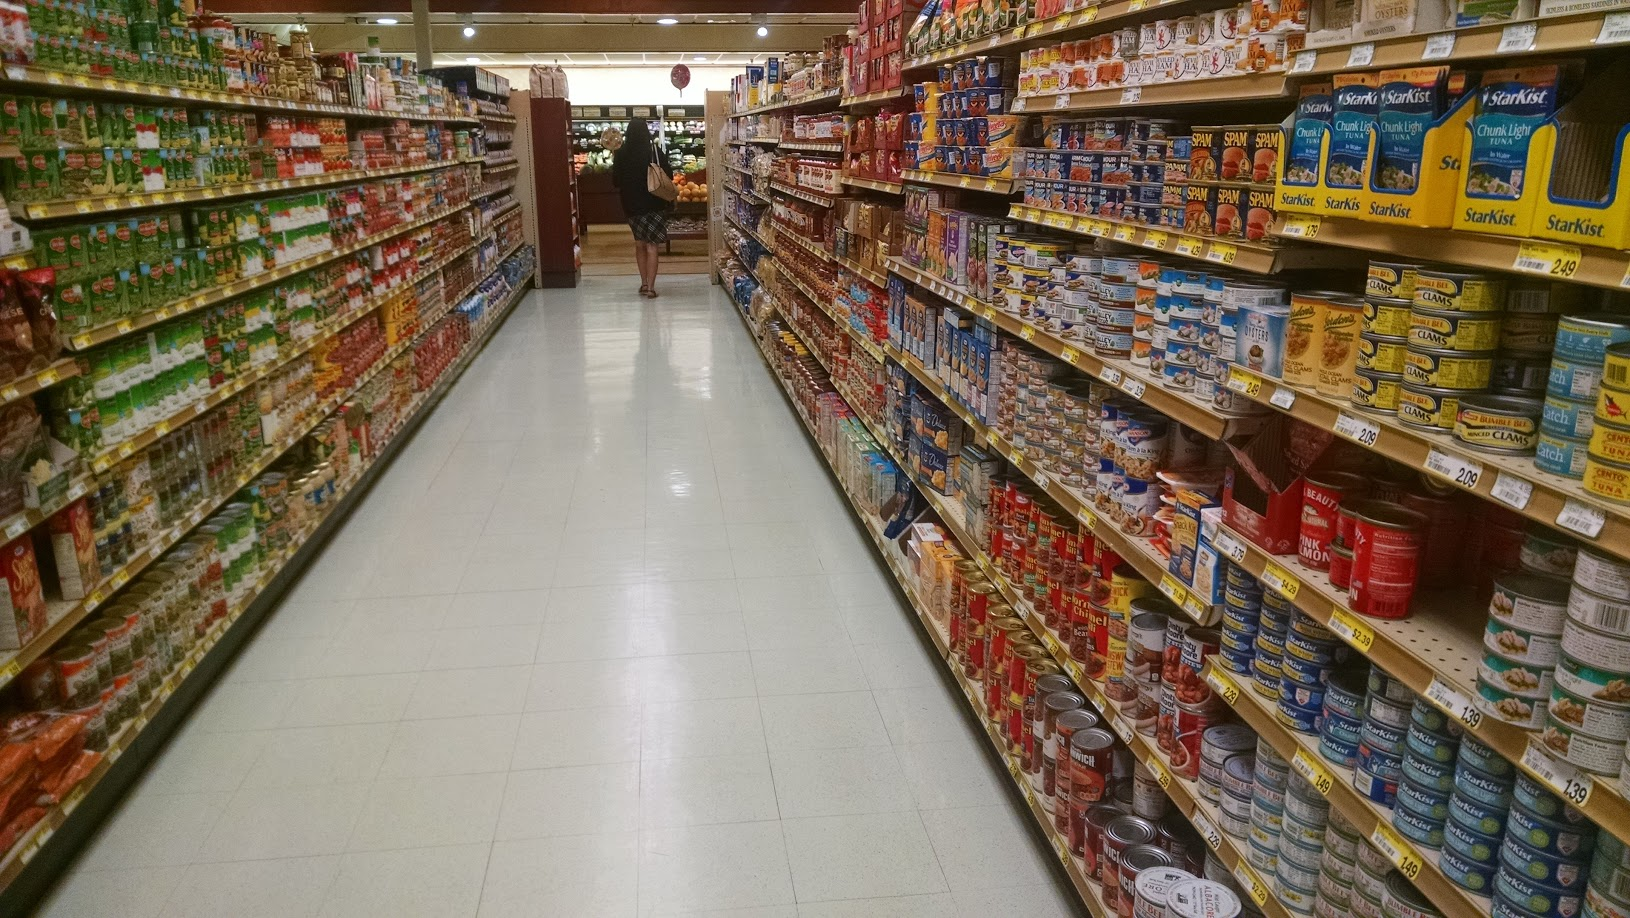 supermarket aisles with cann meats on the right and vegetable oils on the left